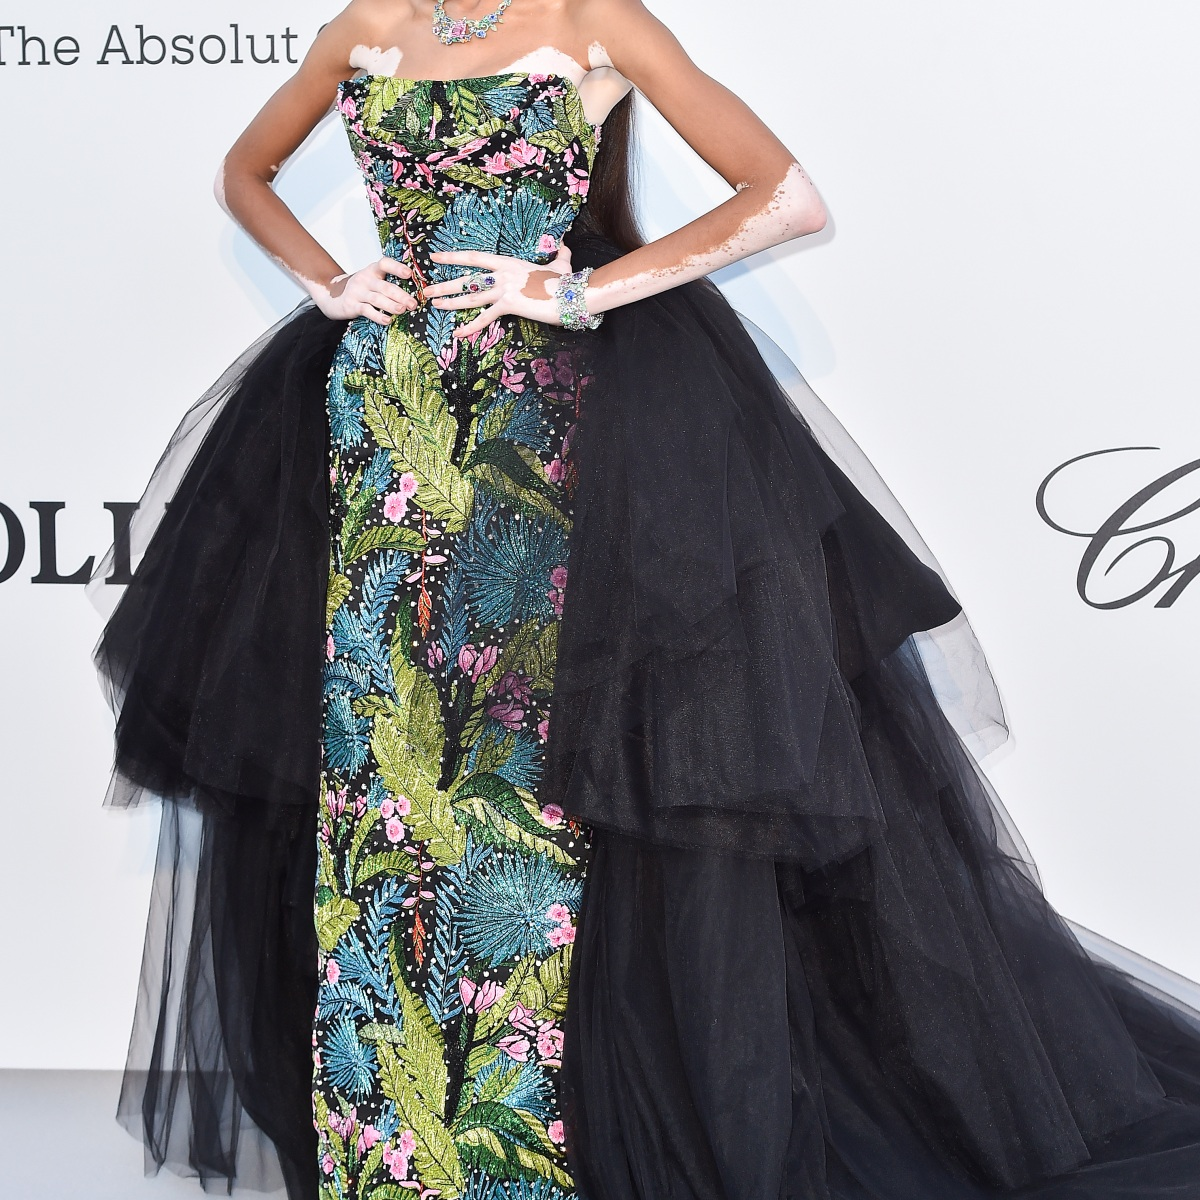 Olivia Culpo, Kendall Jenner and Many More Stun at the 2019 amfAR Cannes Gala — See Pics!